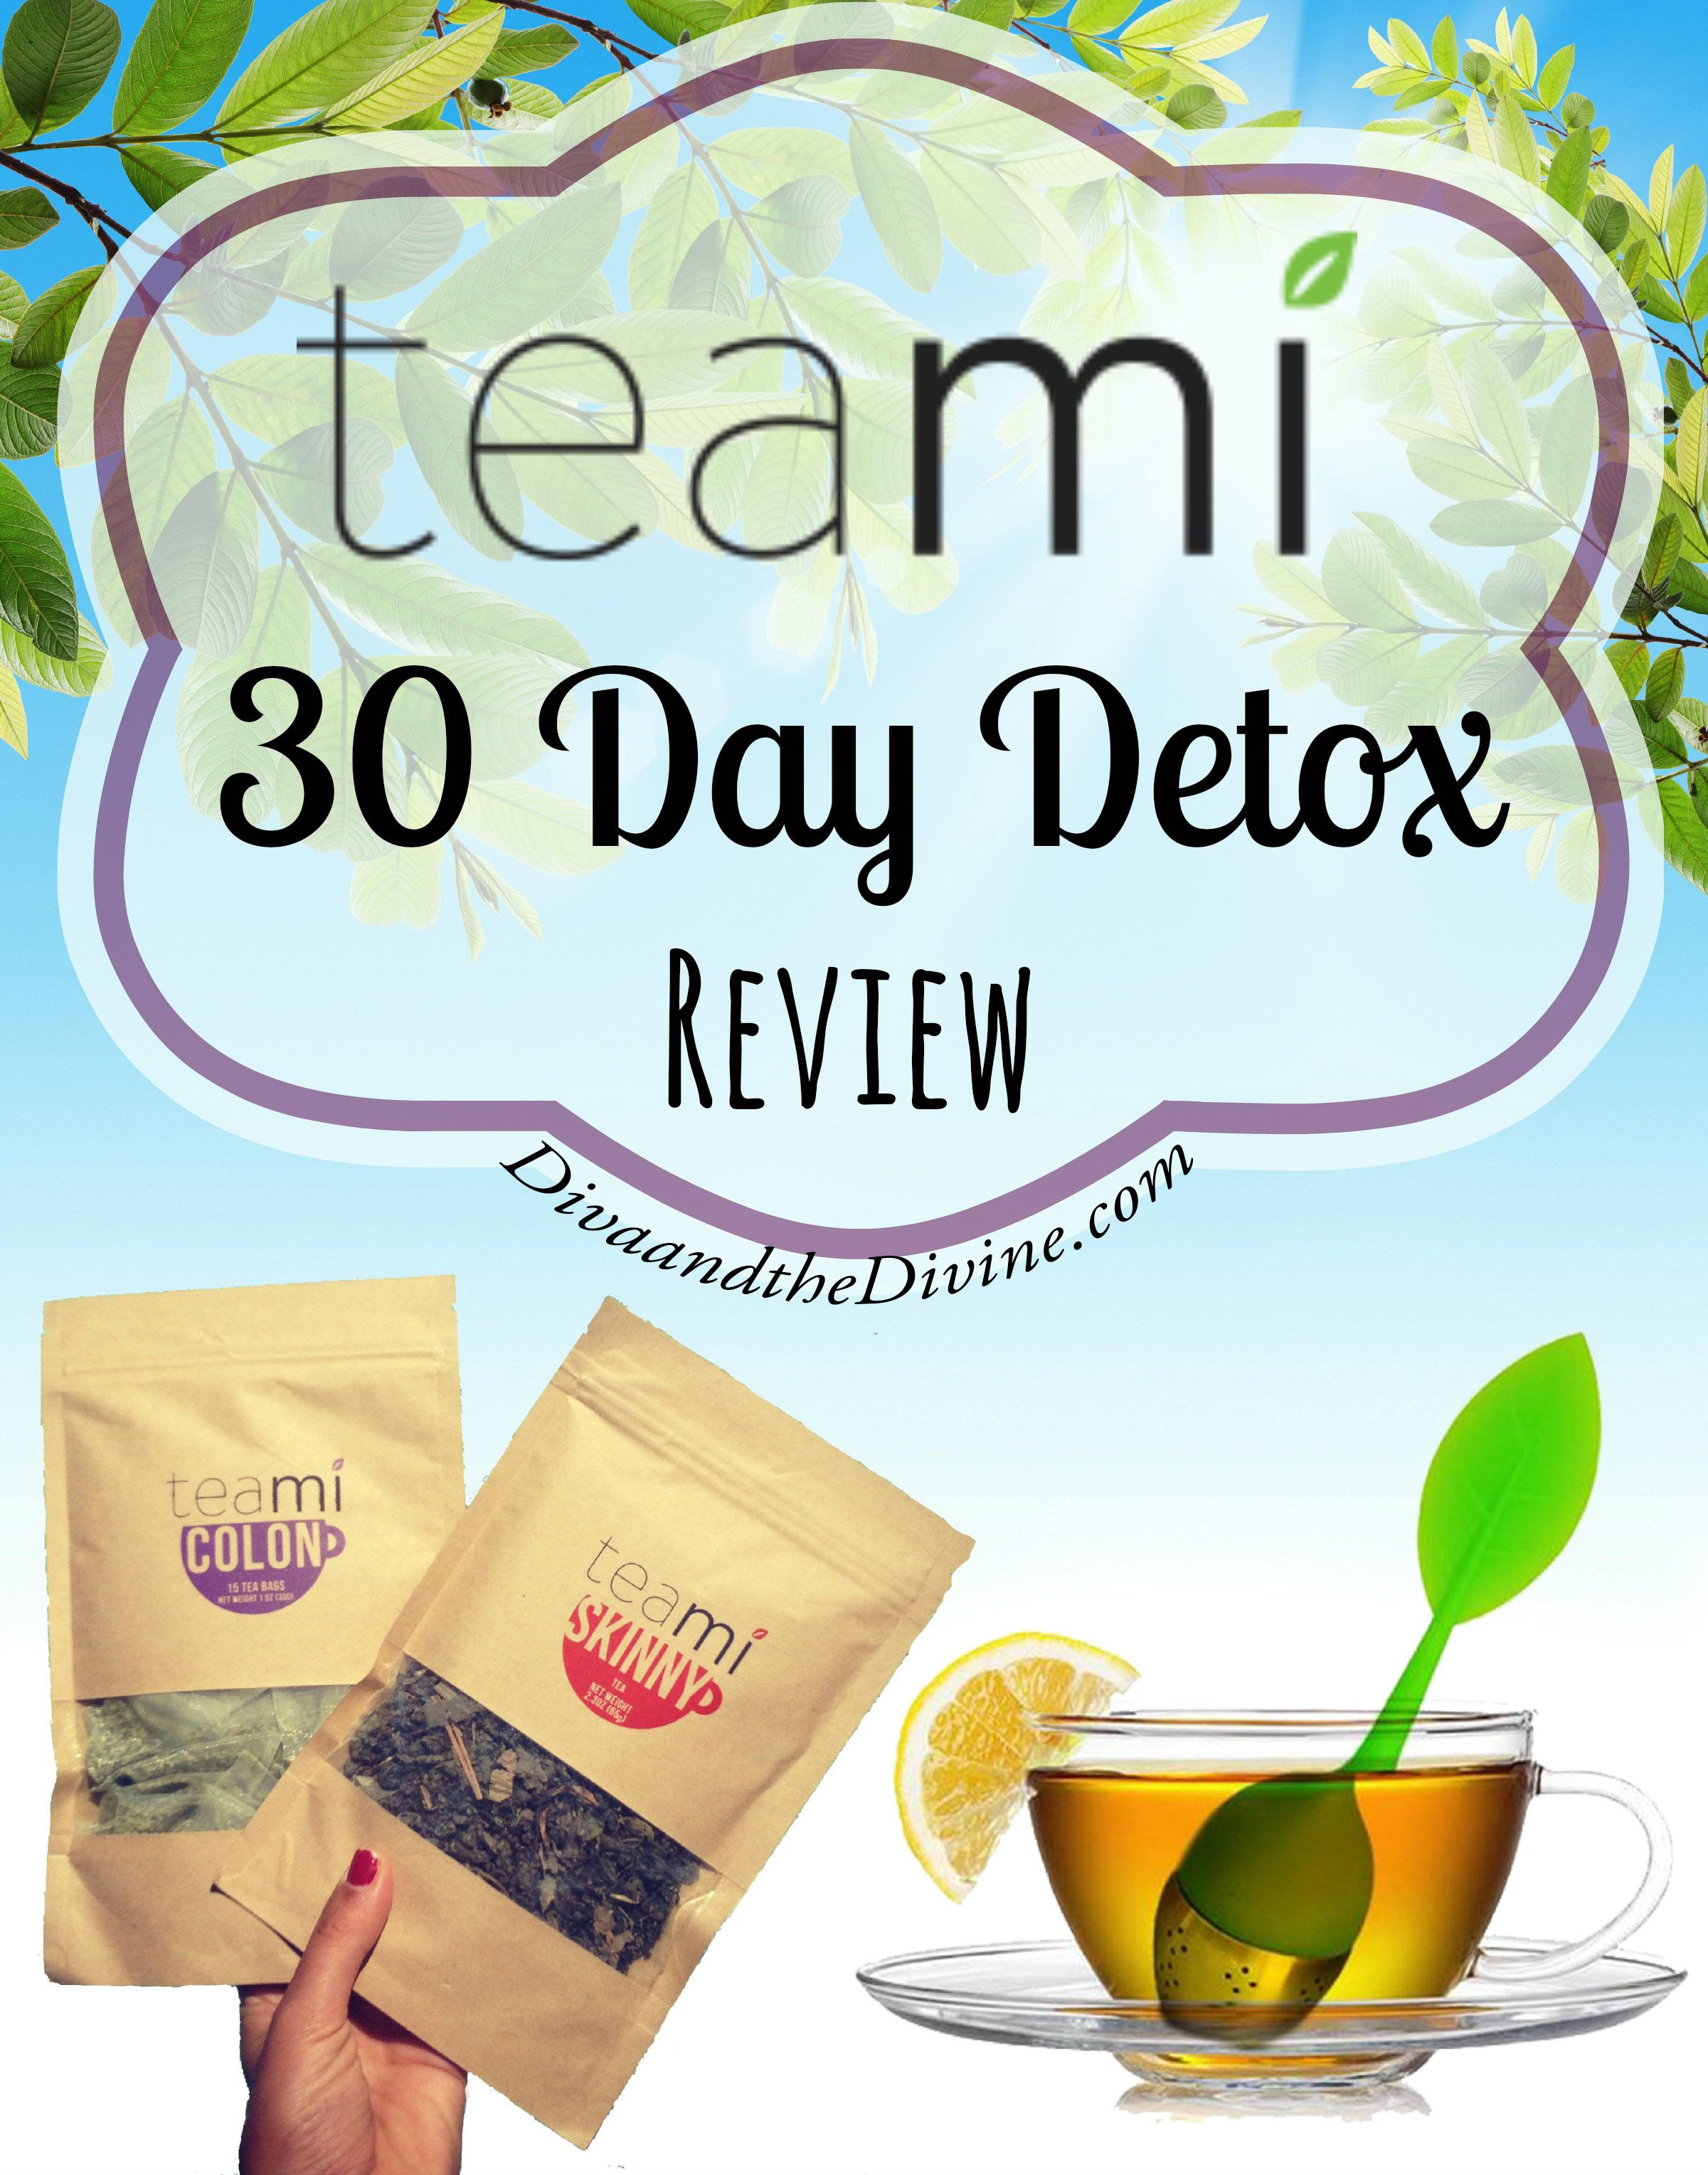 Teami Blends 30 day detox is a tea detox that leaves your body feeling great and running better. For a full review, read on...